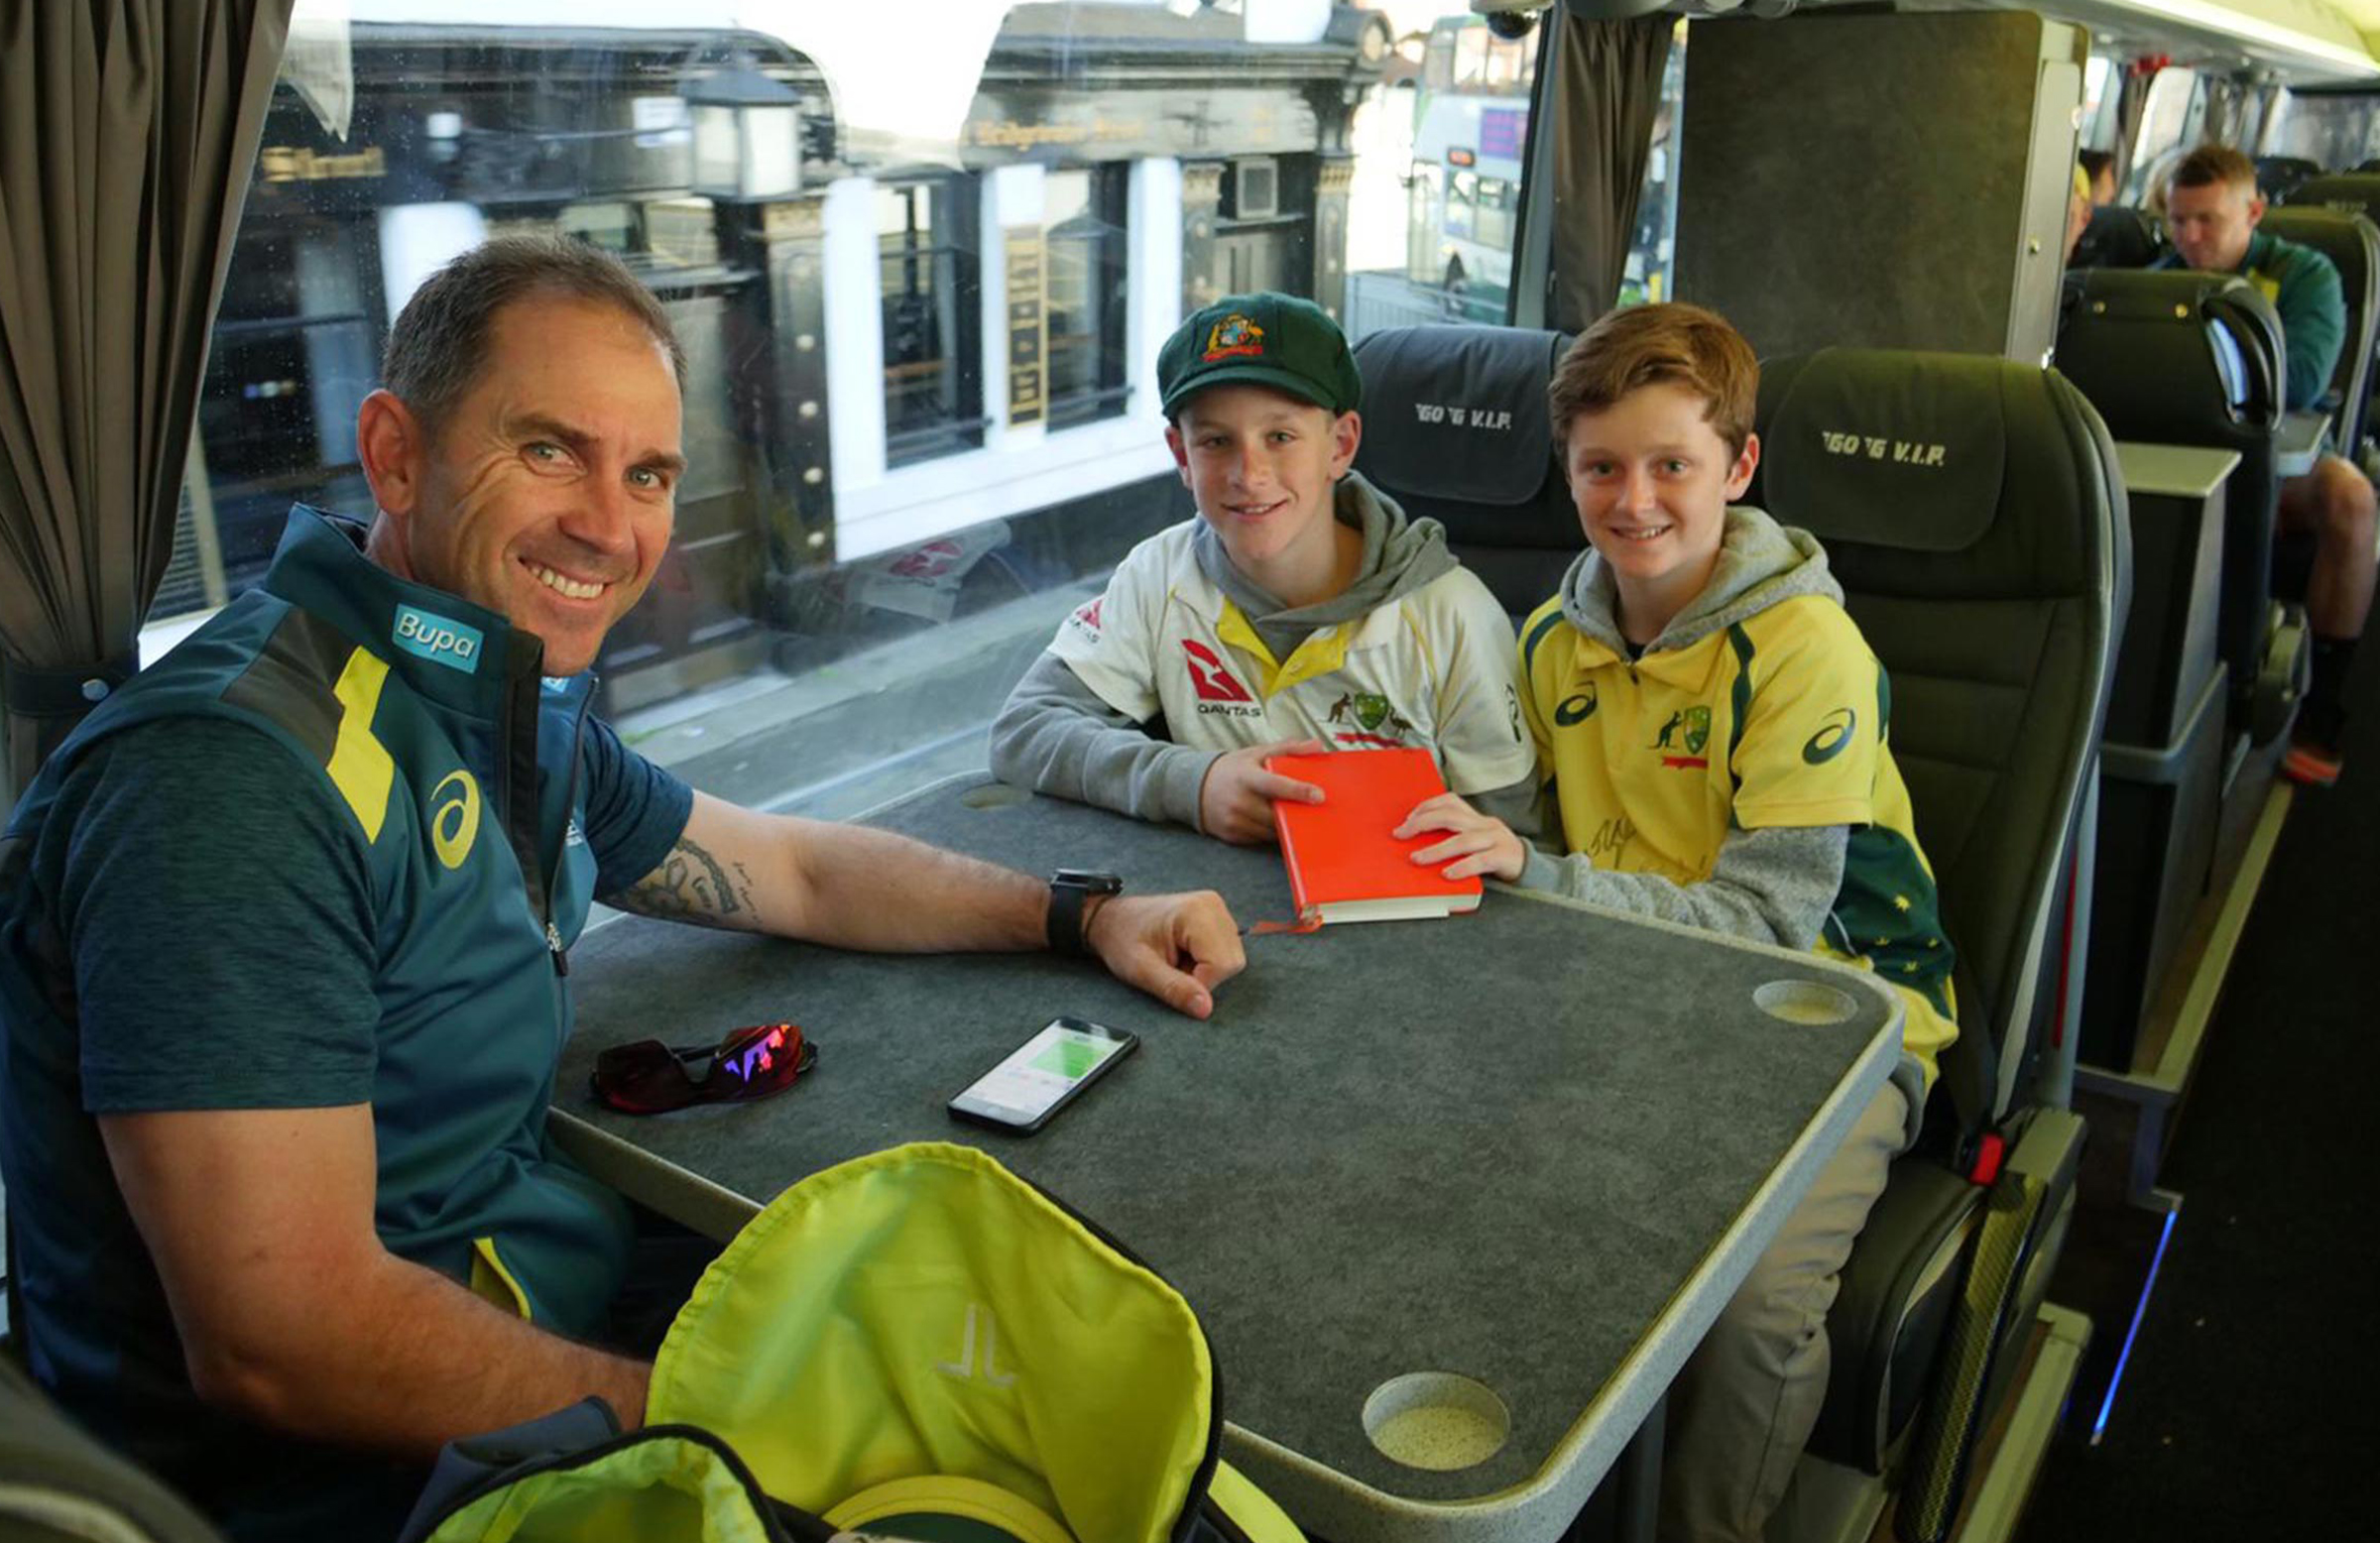 Max and his brother ride on the team bus with Justin Langer // supplied